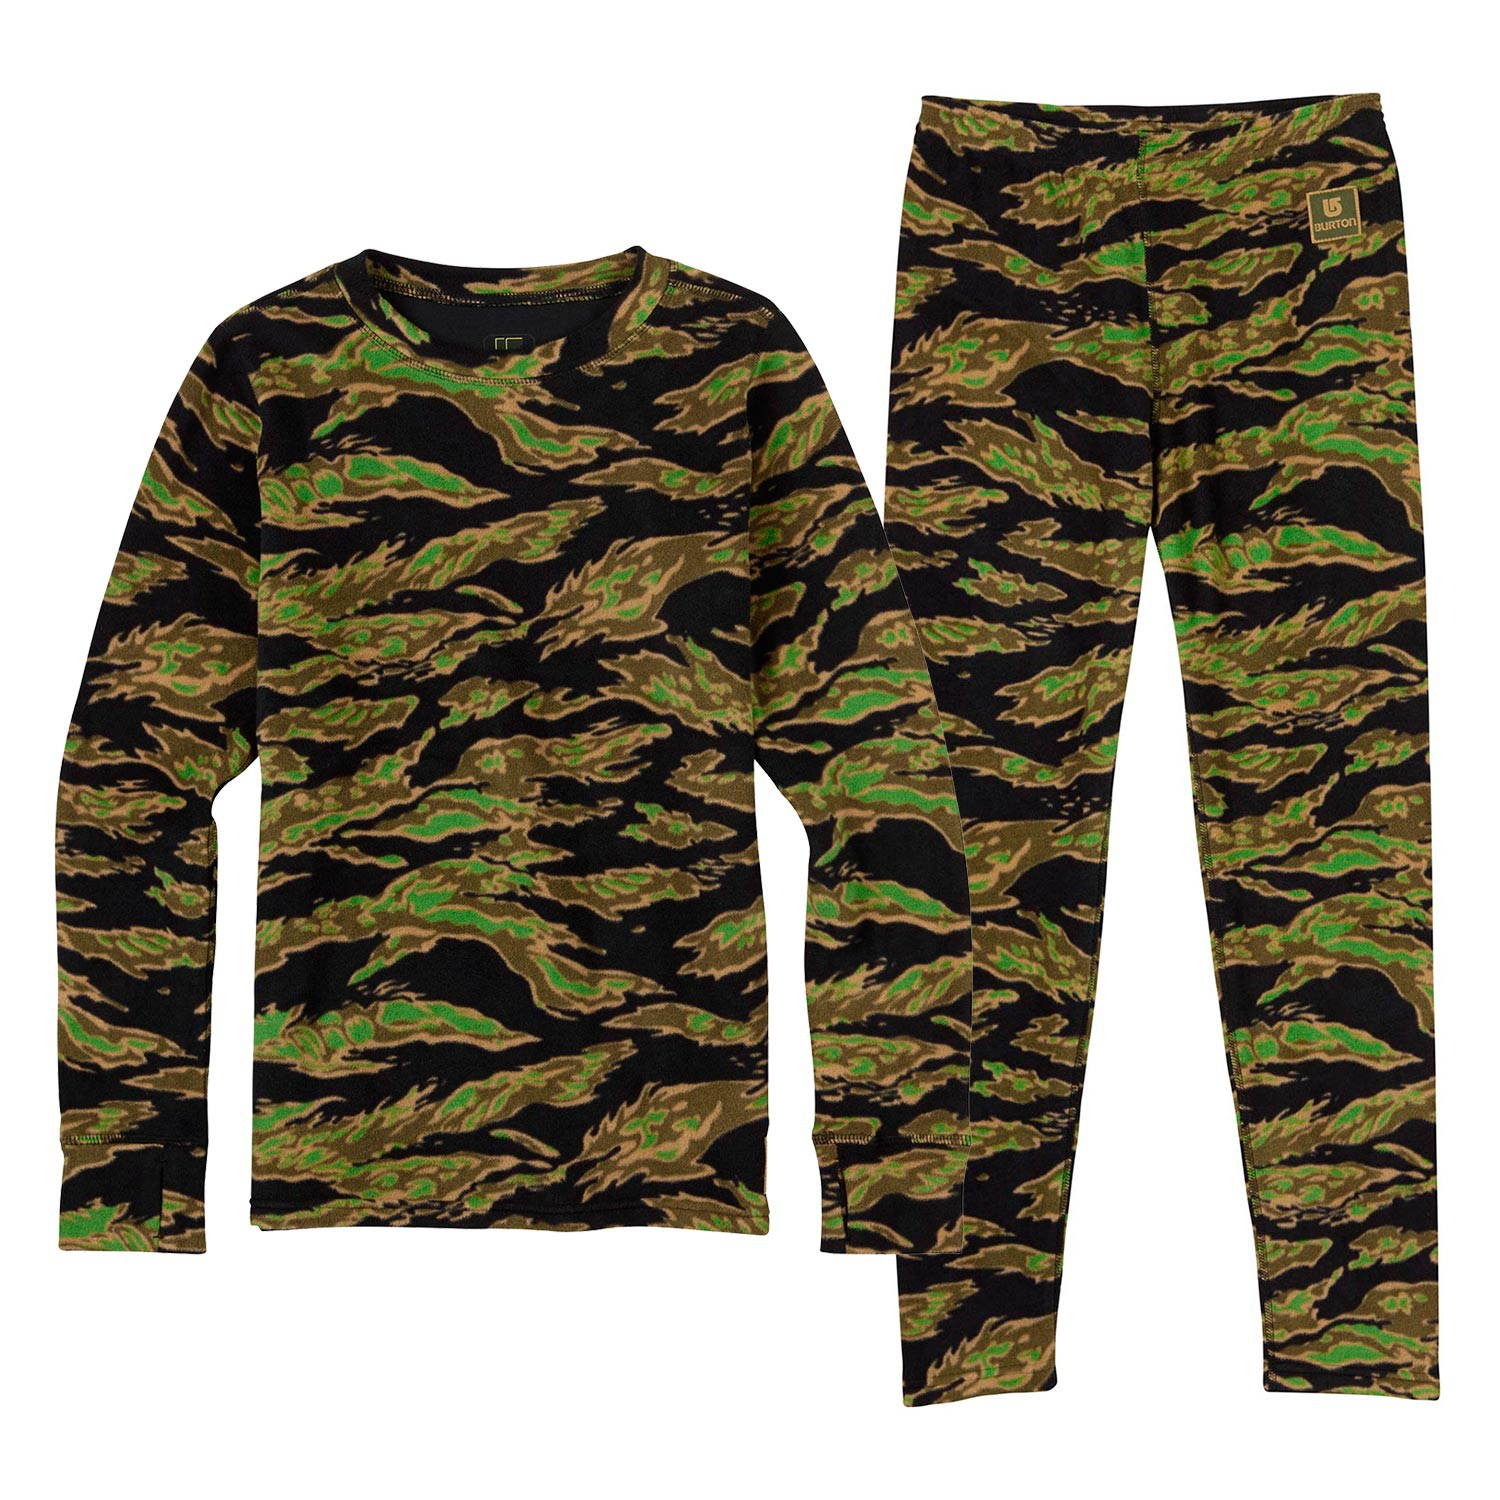 Triko Burton Youth Fleece Set beast camo